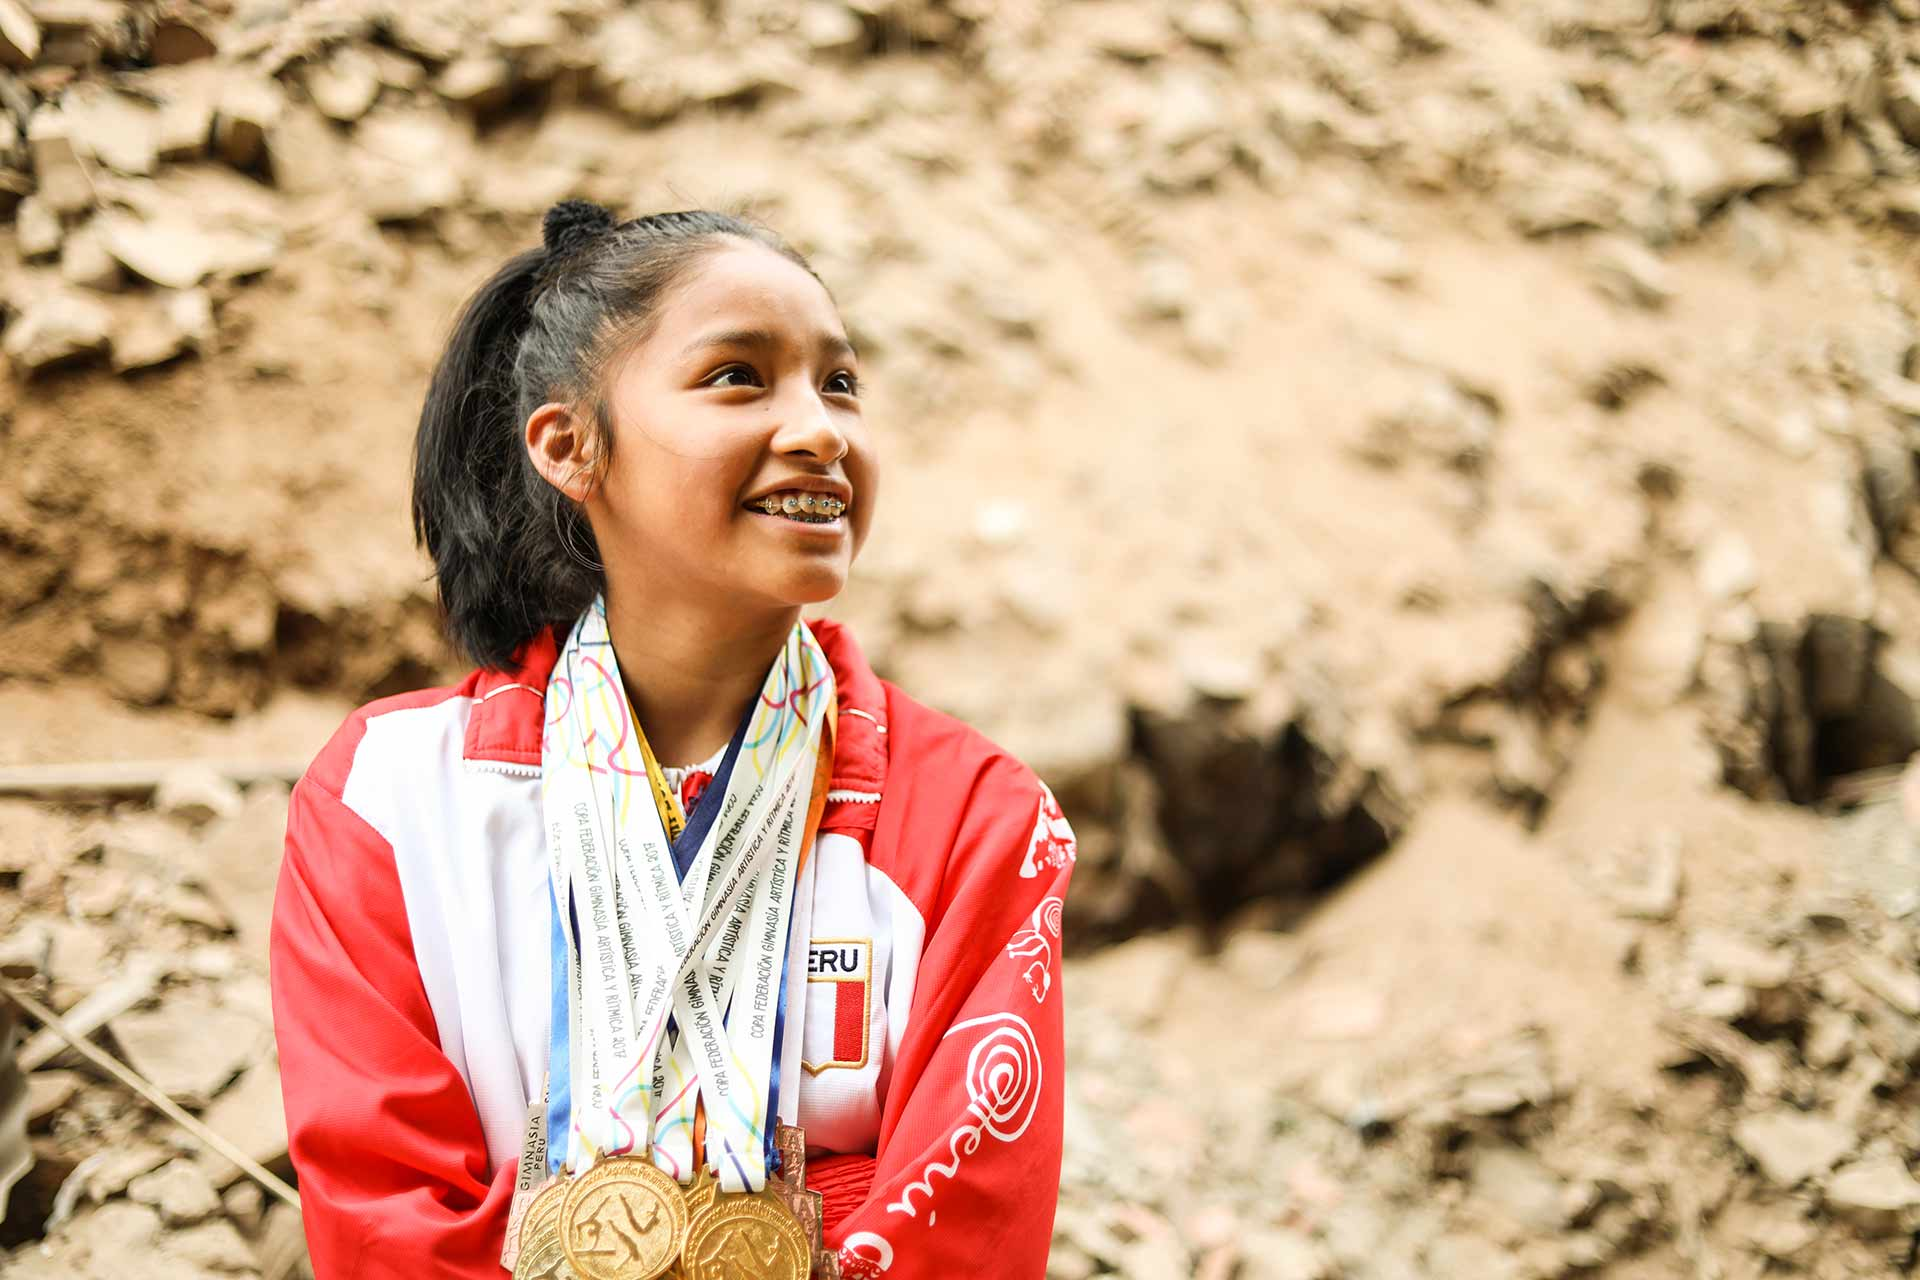 A girl wearing a red and white jacket has multiple gold medals around her neck. She smiles, looking up and to the side.